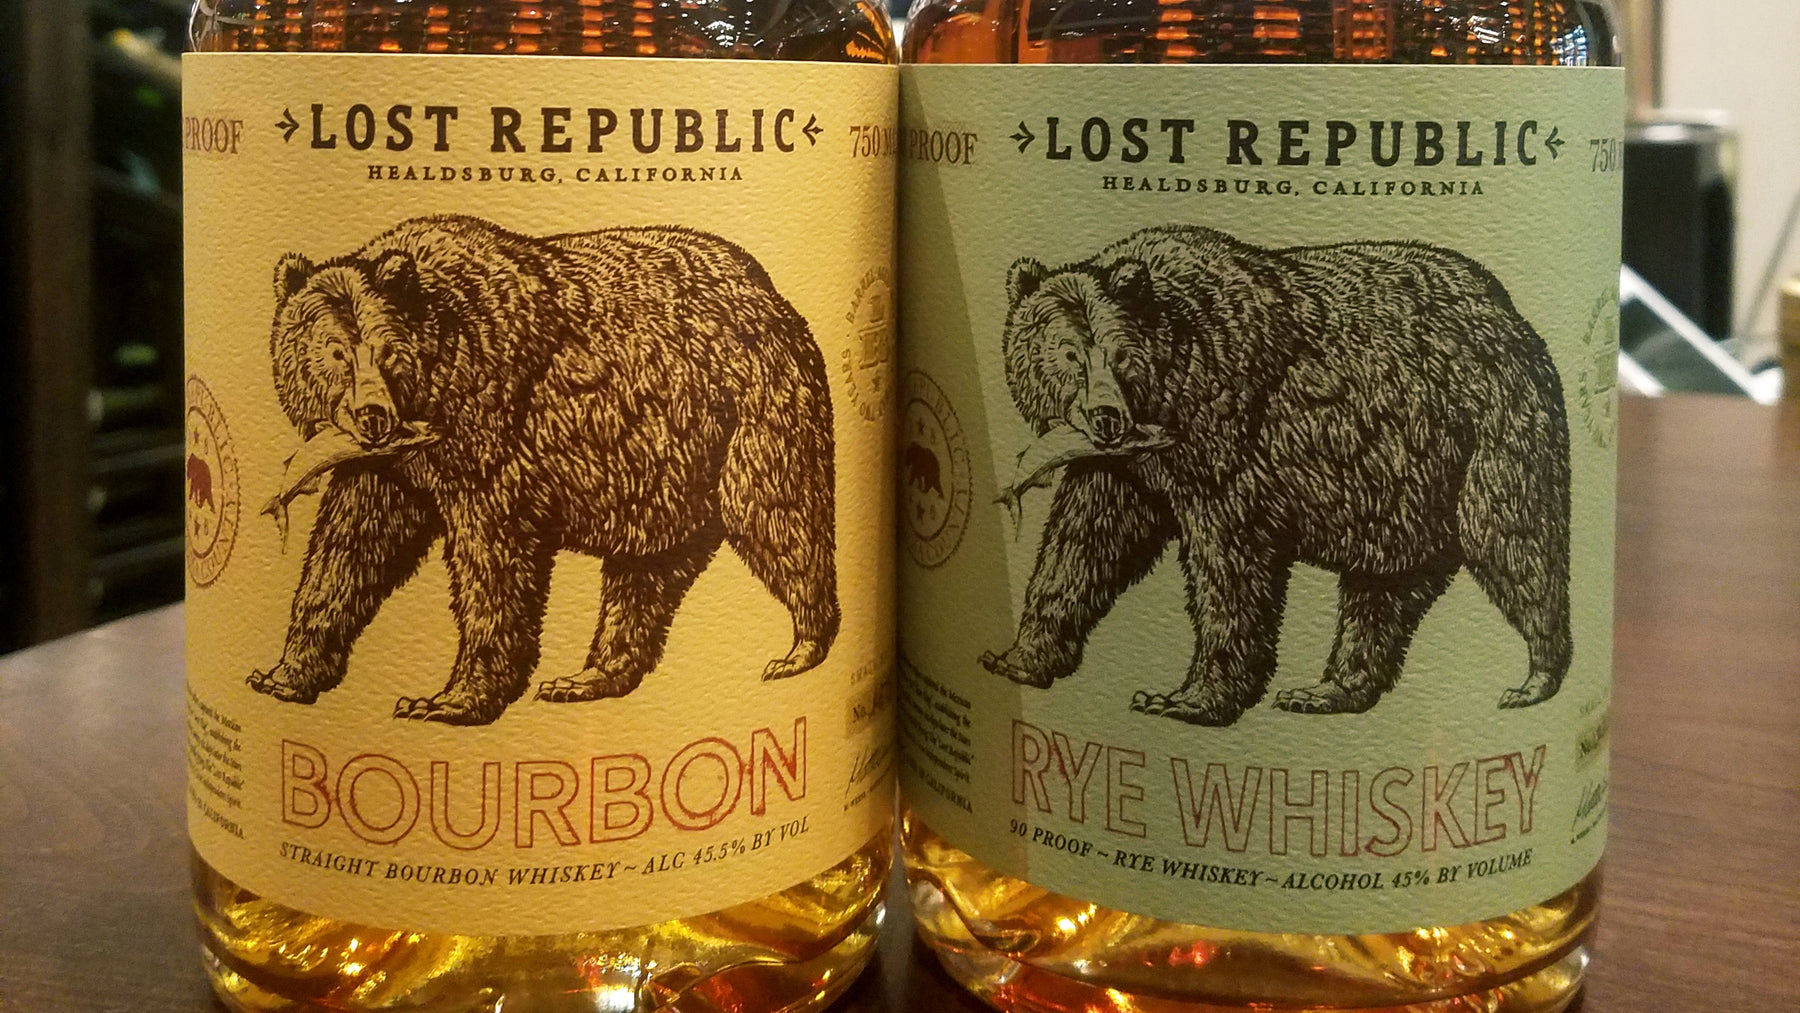 Lost Republic Distilling Co. Tasting | Friday. March 8th | 5-7pm